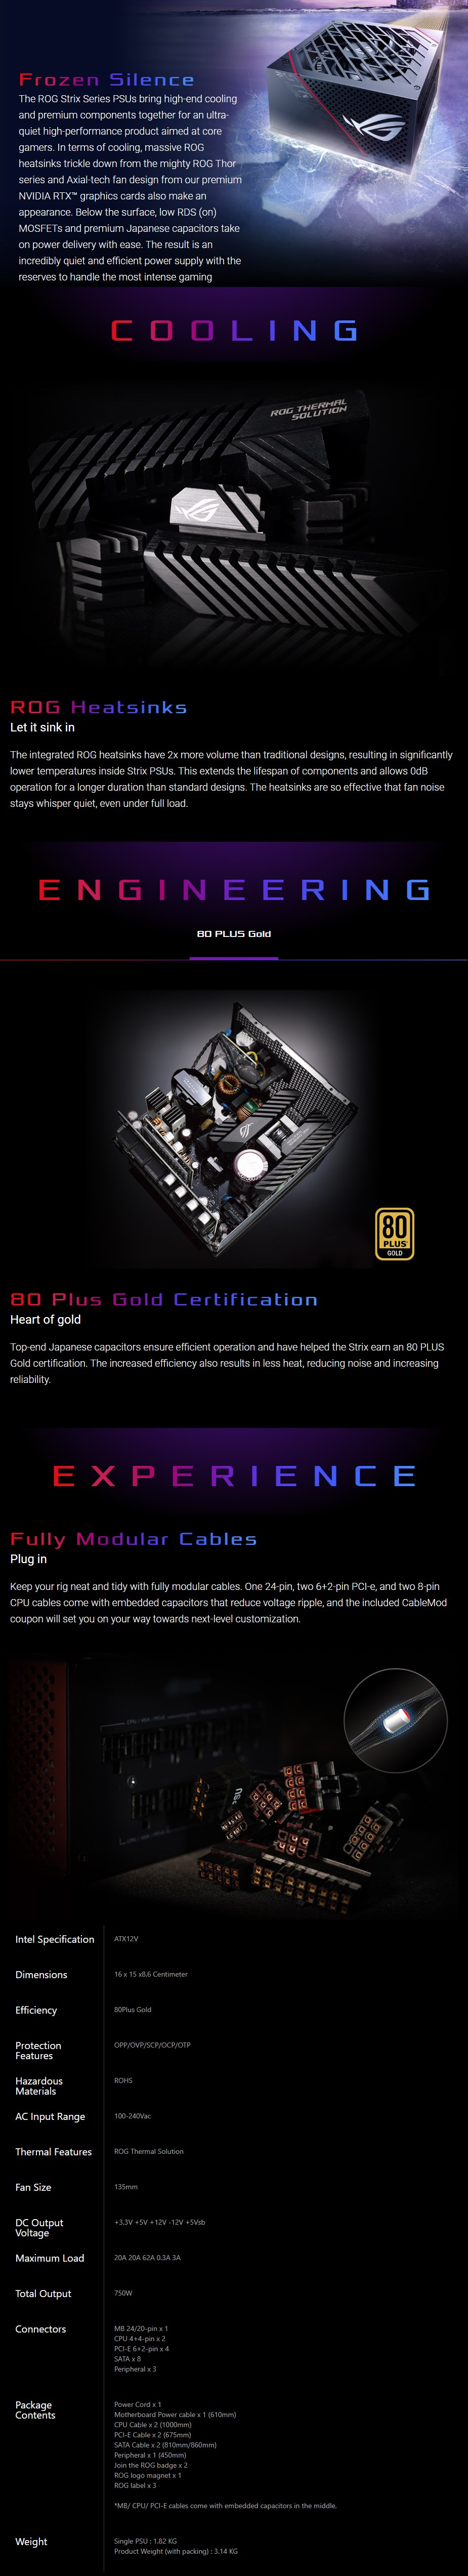 ASUS ROG Strix 750W 80 Plus Gold Modular Power Supply Unit - Overview 1